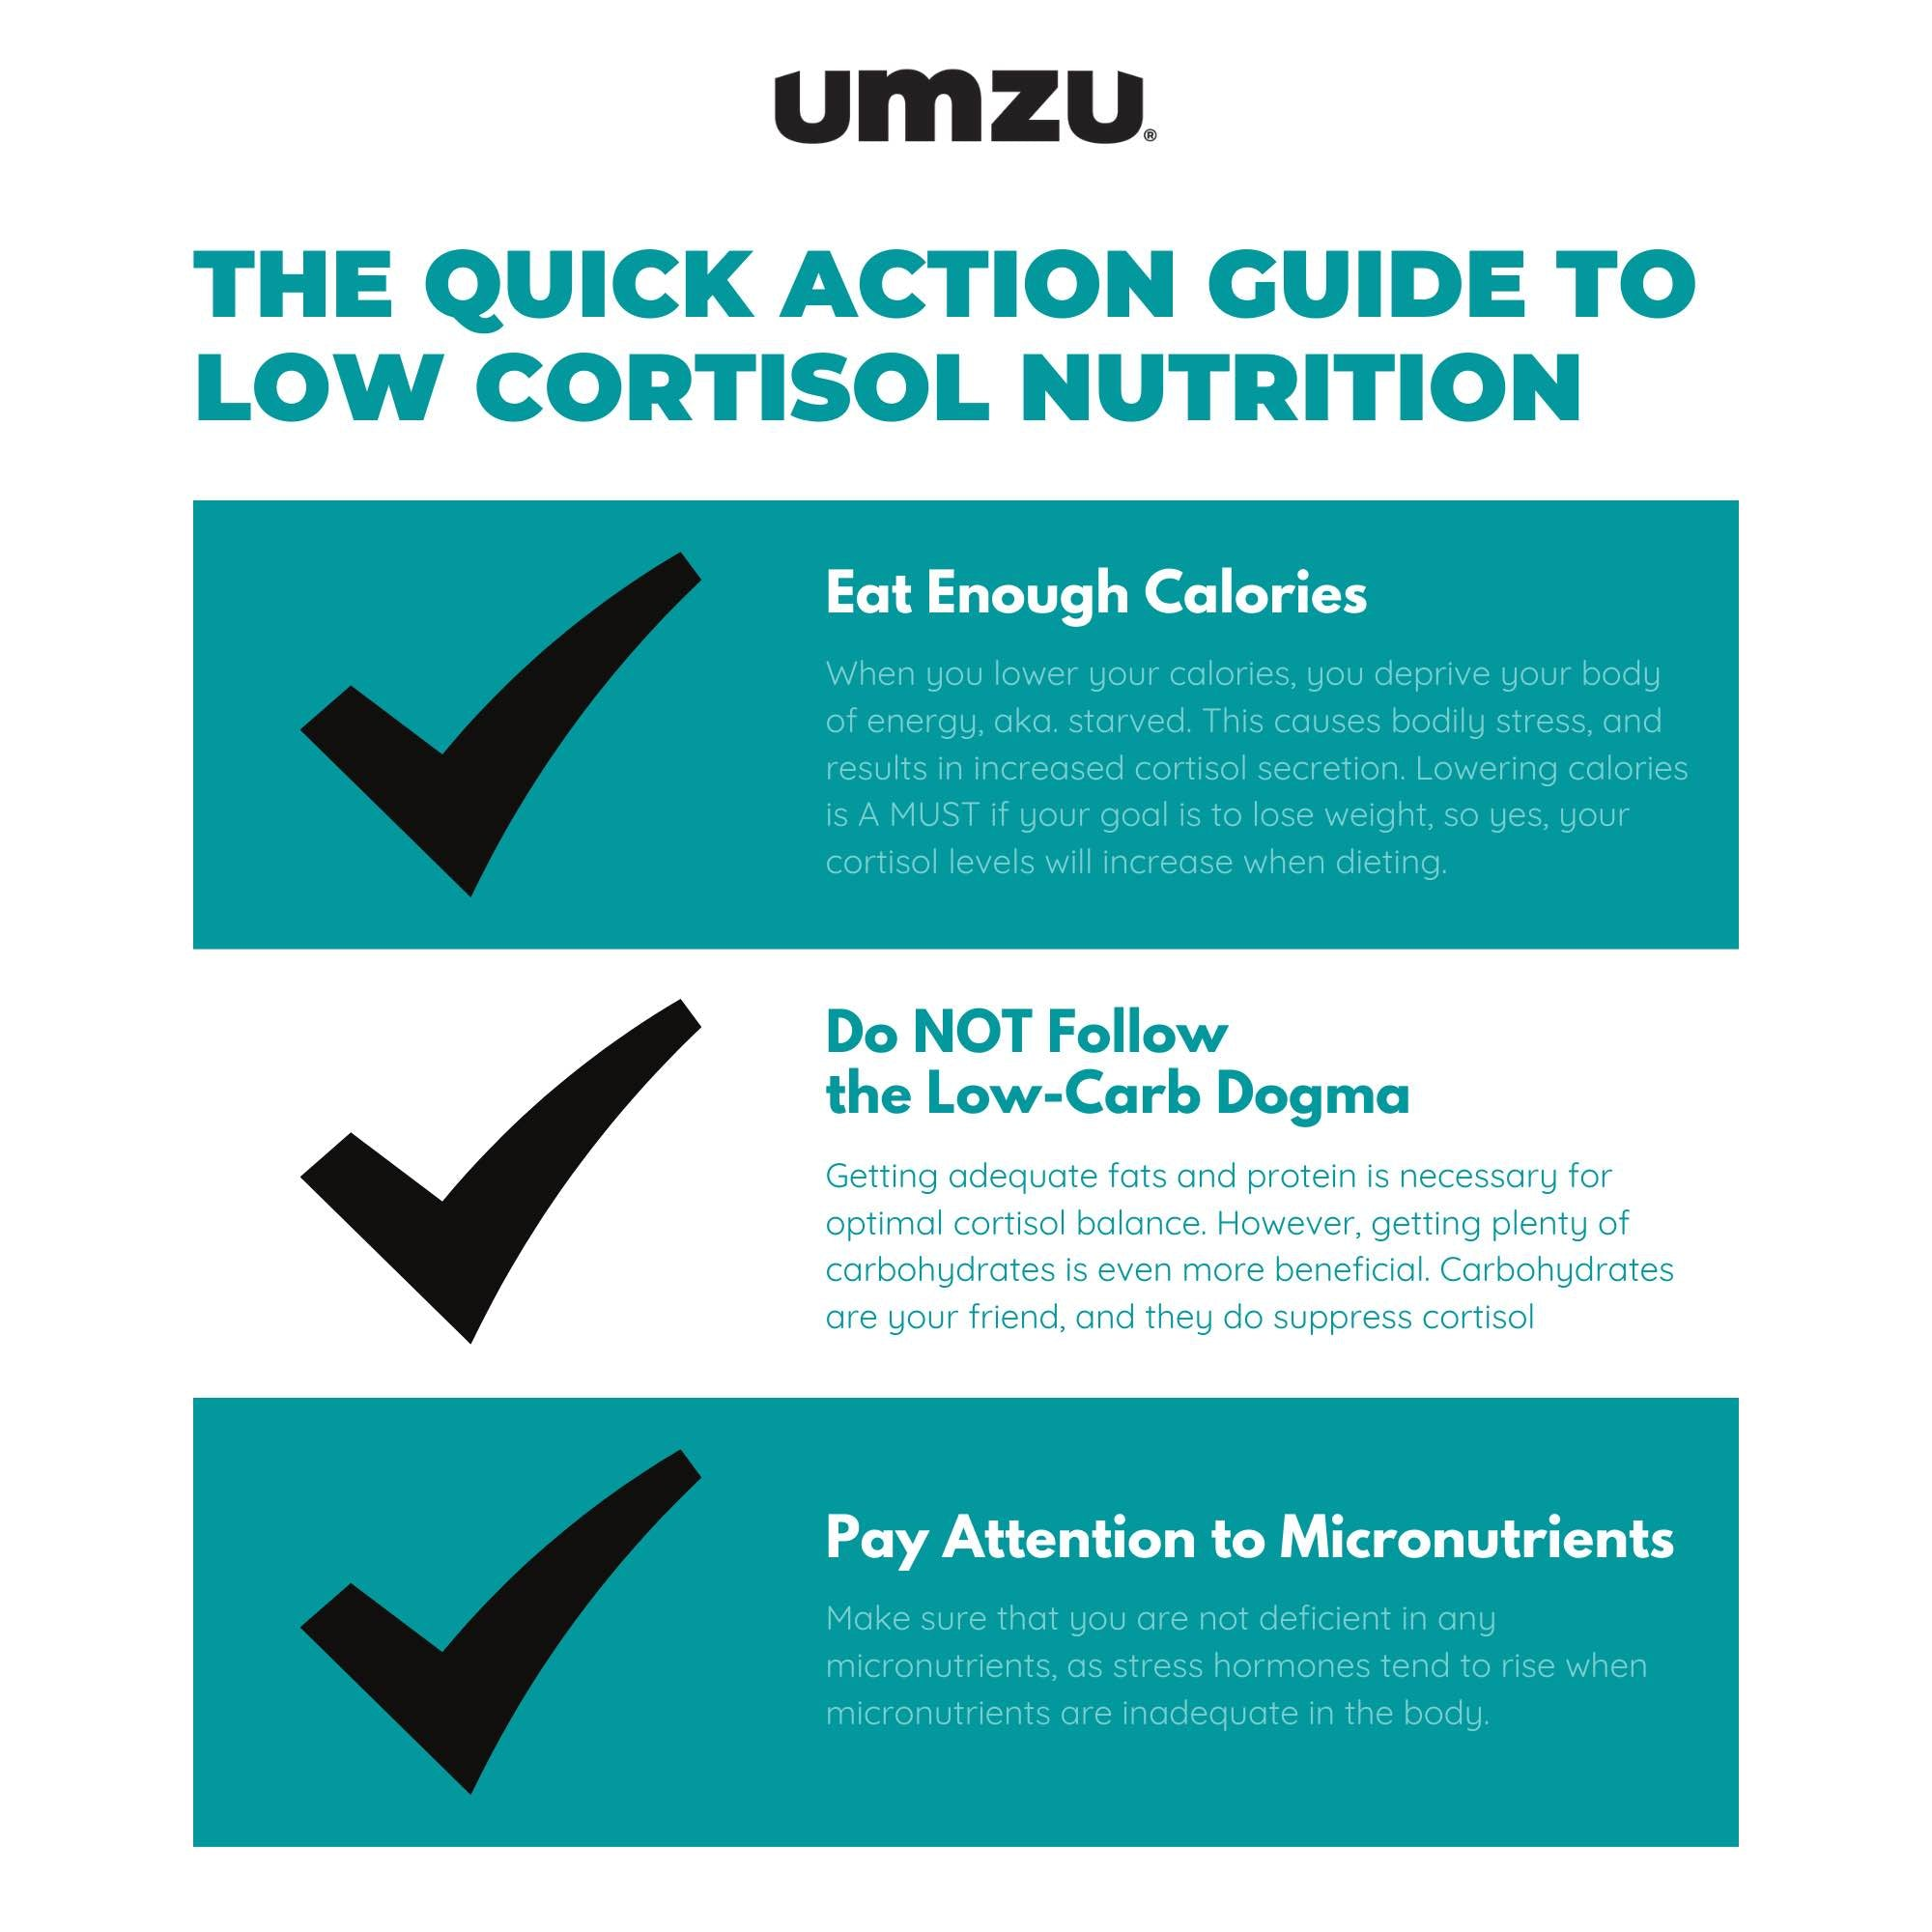 low cortisol nutrition